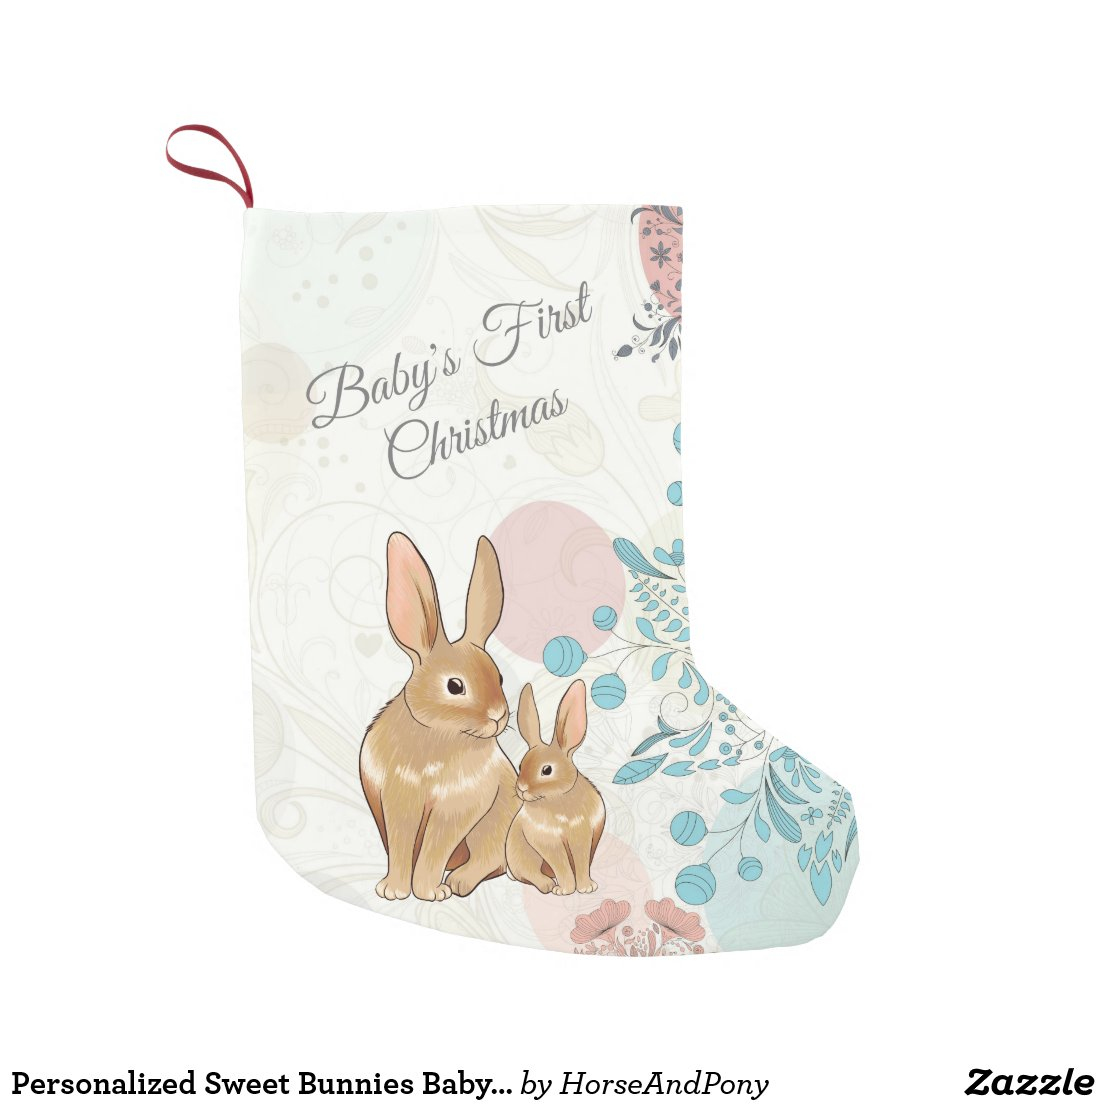 Personalized Sweet Bunnies Baby's 1st Christmas Small Christmas Stocking